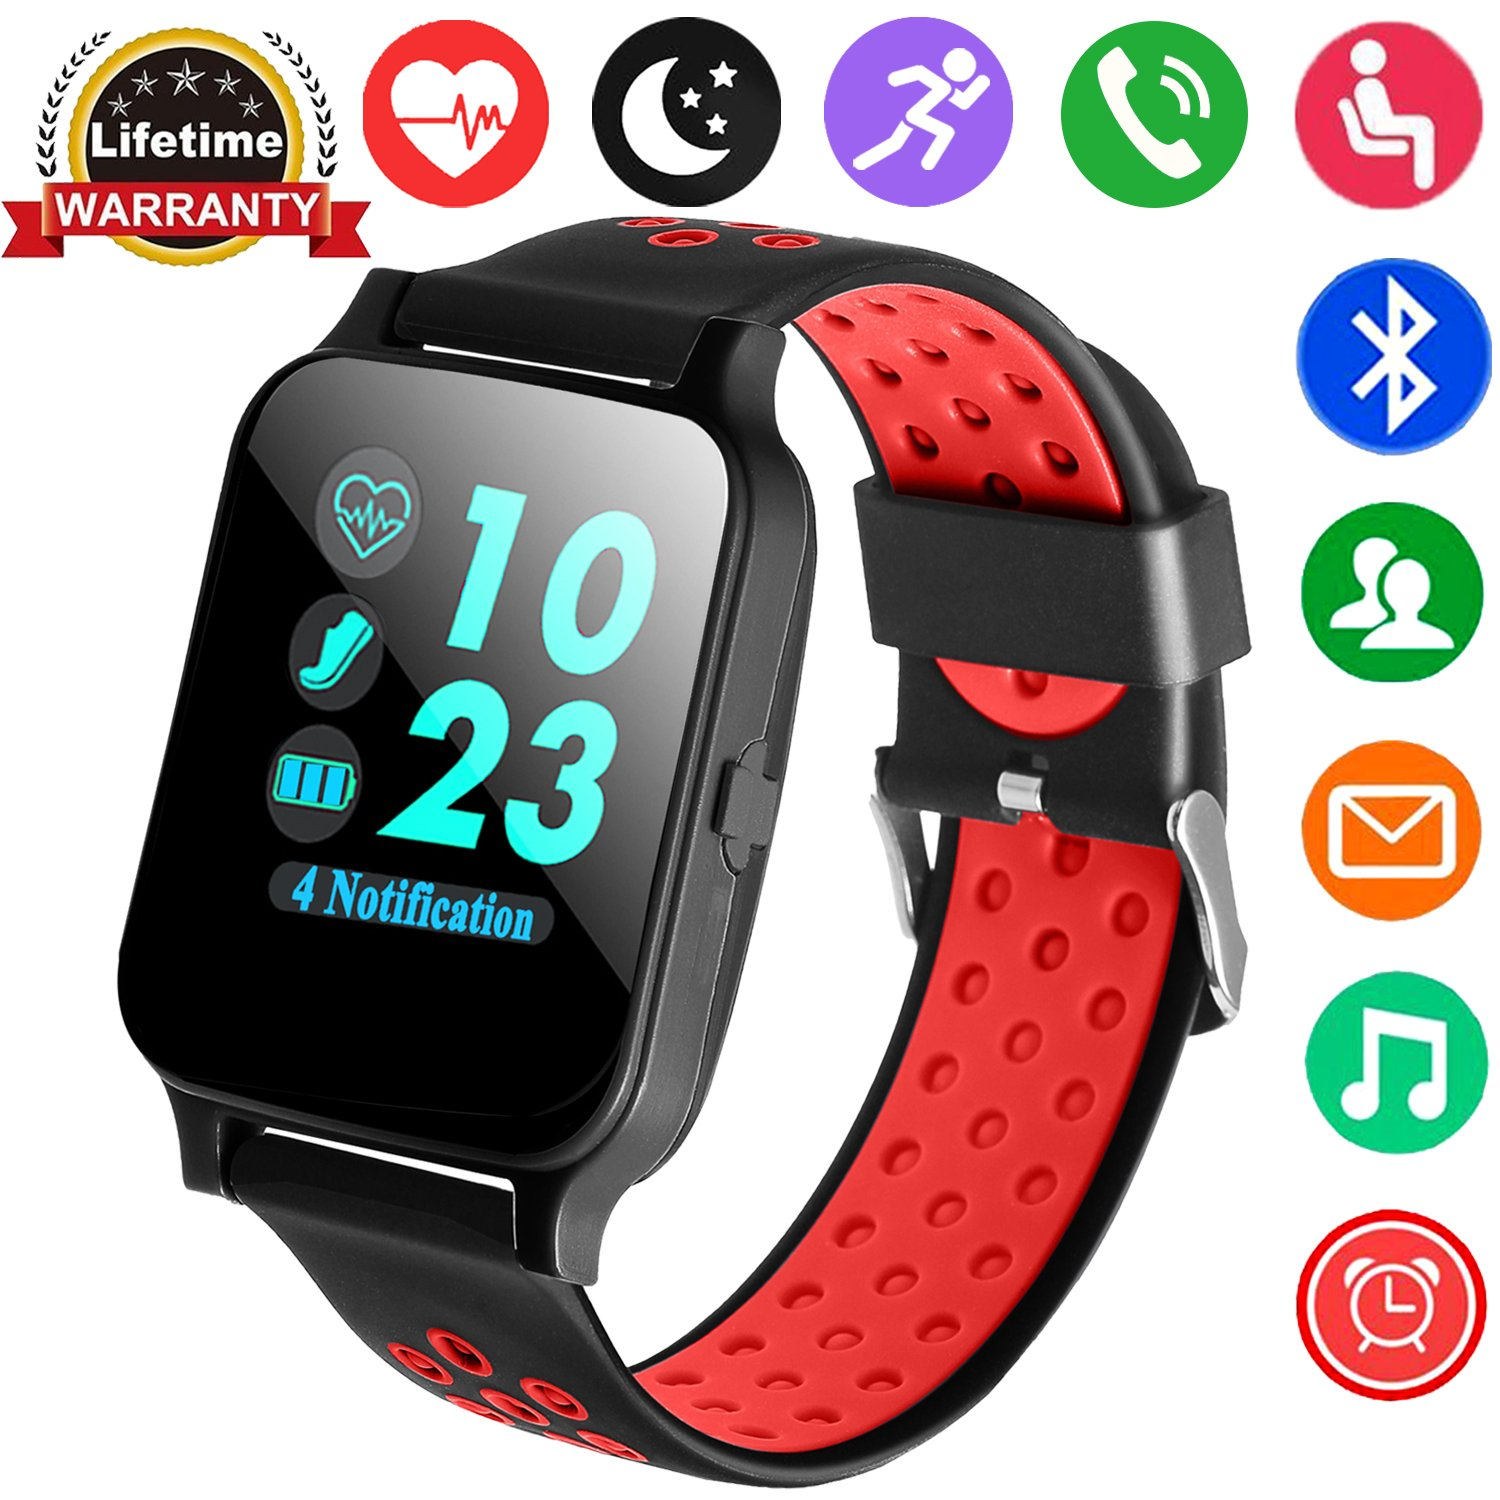 GBD Smart Watch for Men Women Kids Boys Girls Sport Activity Fitness Tracker with Heart Rate Blood Pressure Health Monitor Pedometer Calorie Wrist Watch Compatible with iOS Android Smartphone